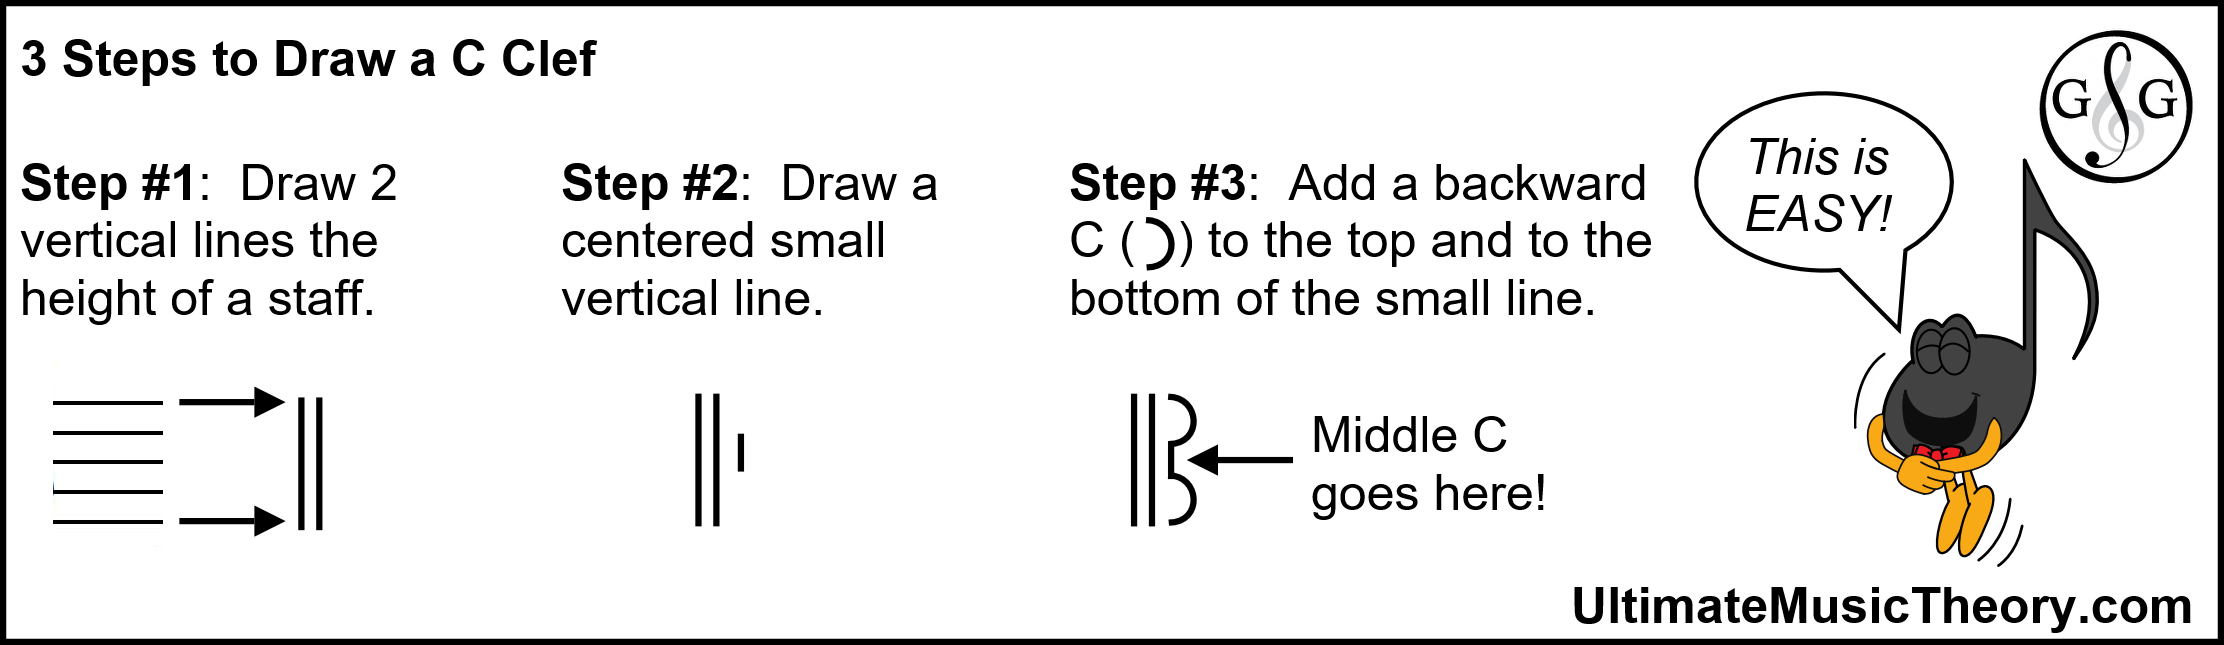 How to Draw C Clef Signs